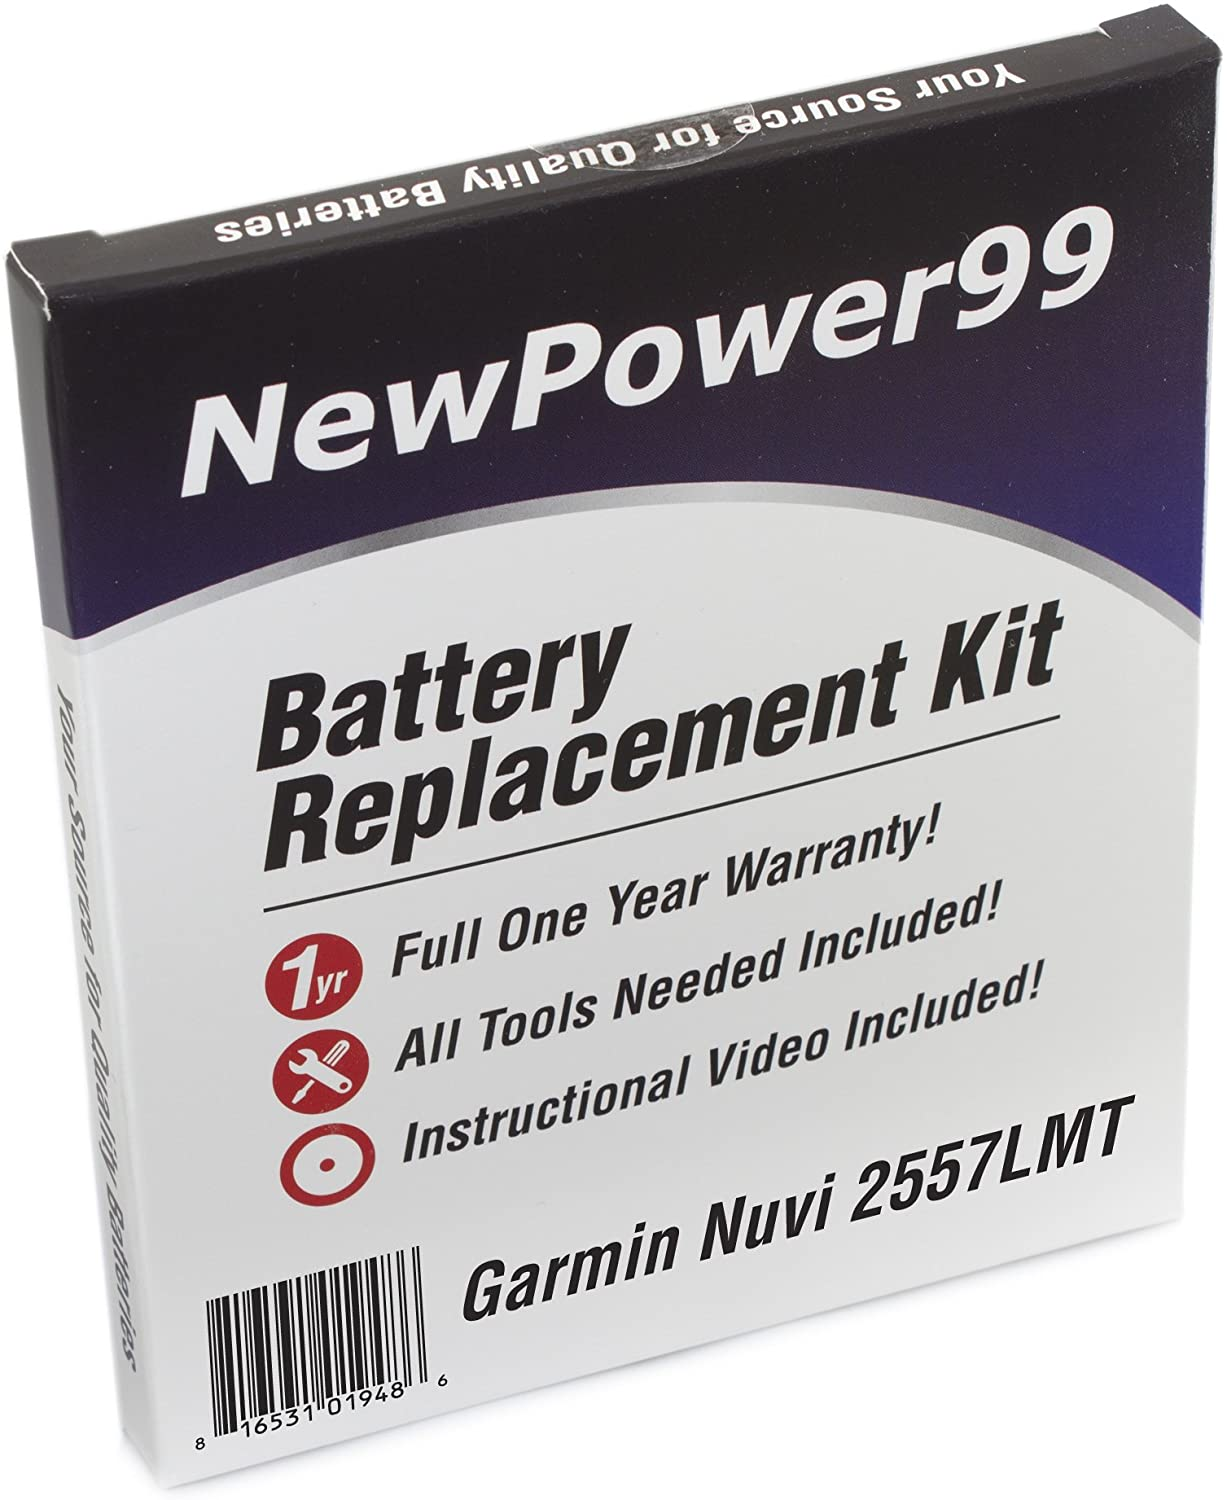 NewPower99 Battery Replacement Kit with Battery, Video Instructions and Tools for Garmin Nuvi 2557LMT